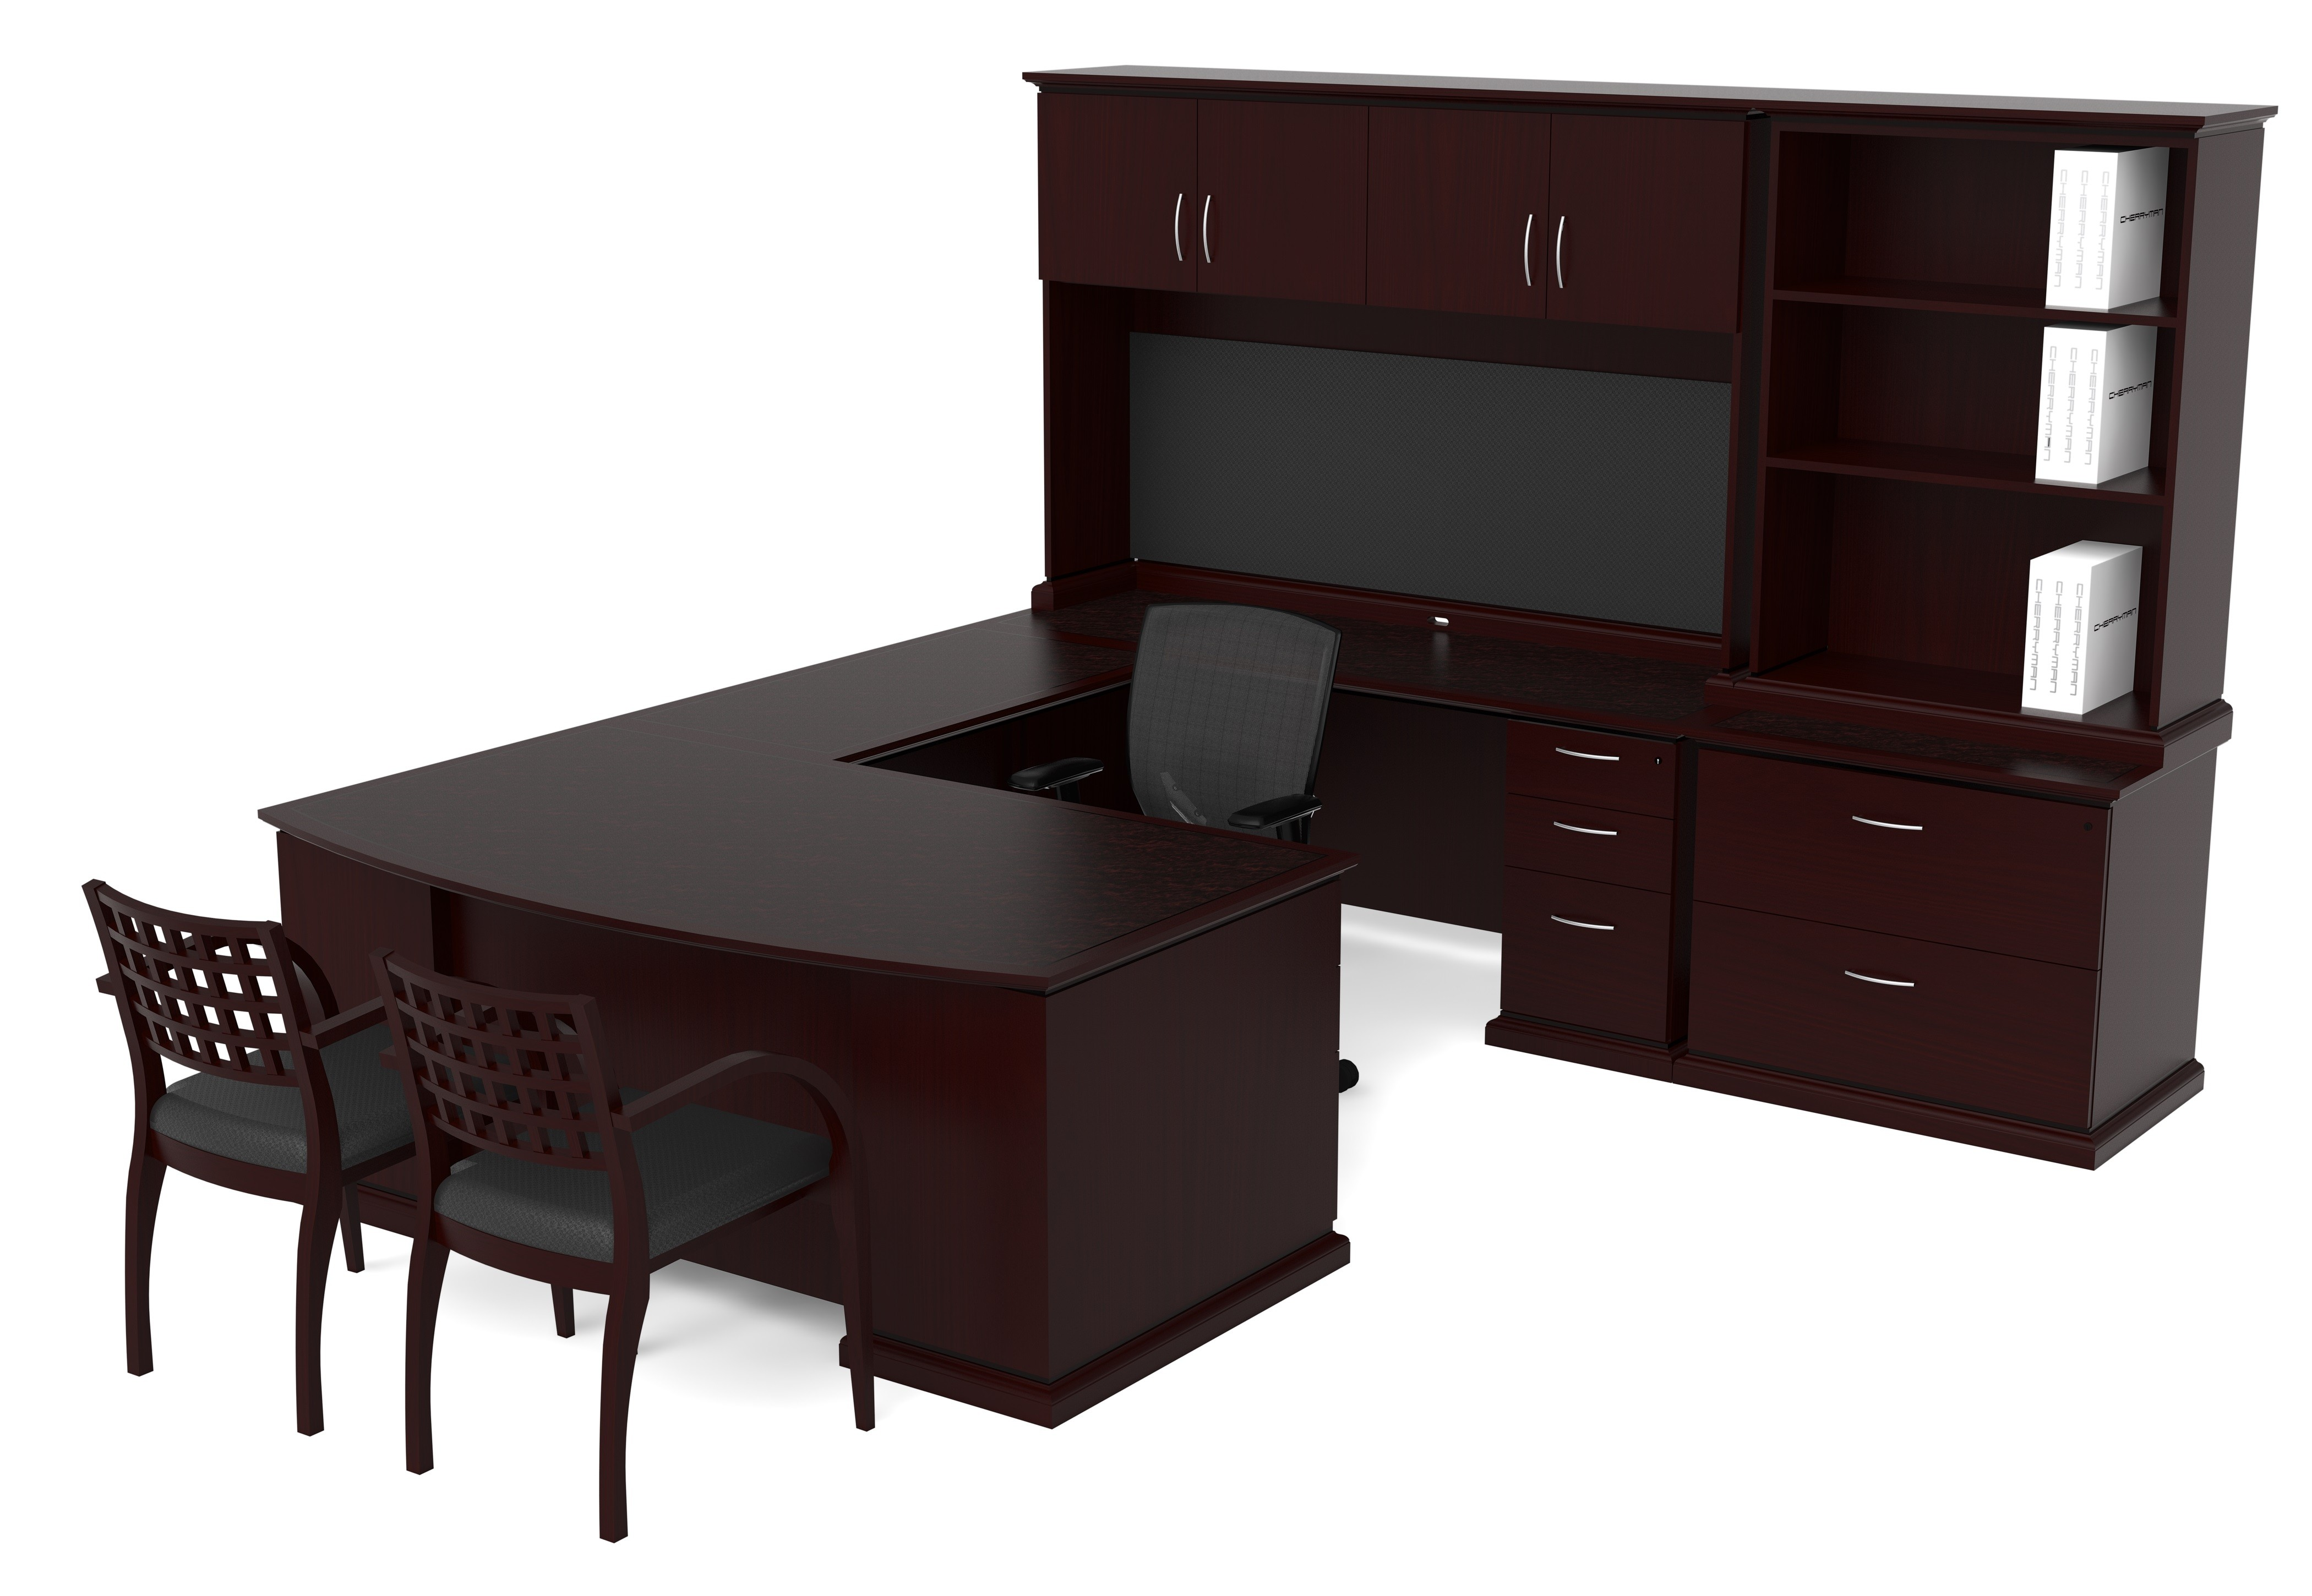 darkbrown l shaped desk with hutch and drawer plus computer stand and armchair for home office